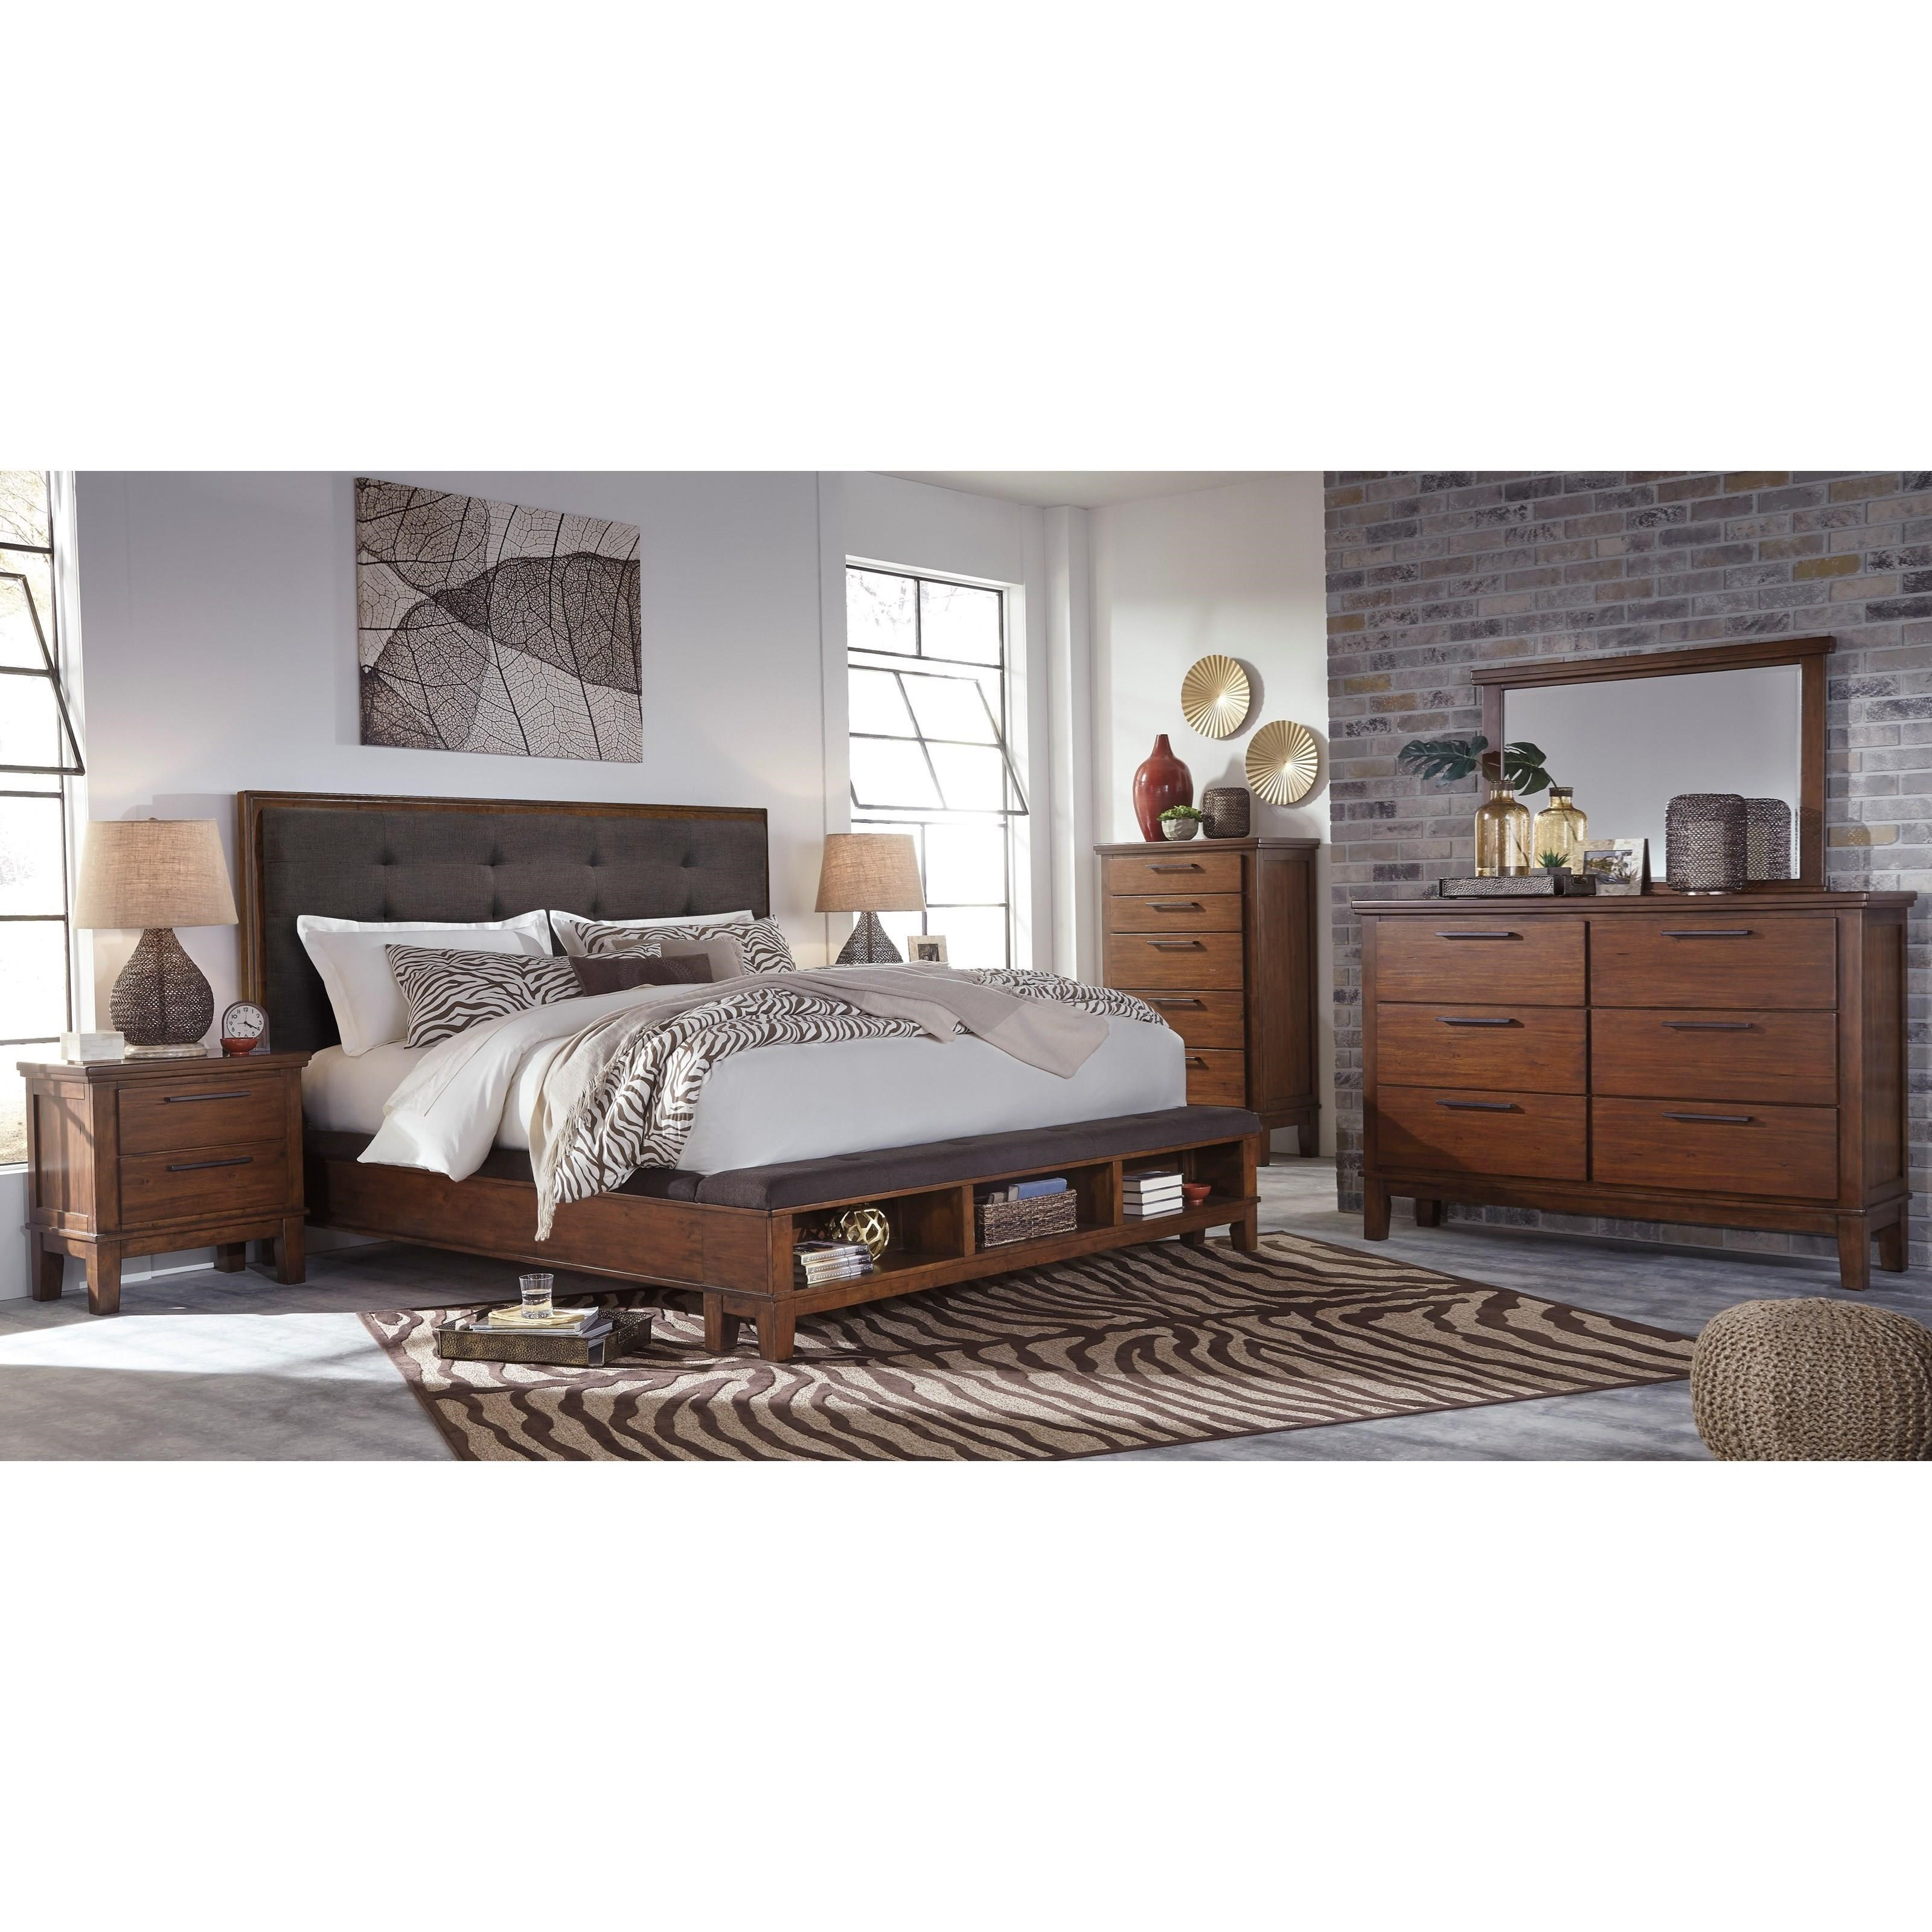 Signature Design By Ashley Ralene Queen 5 Piece Bedroom Group Royal Furniture Bedroom Groups